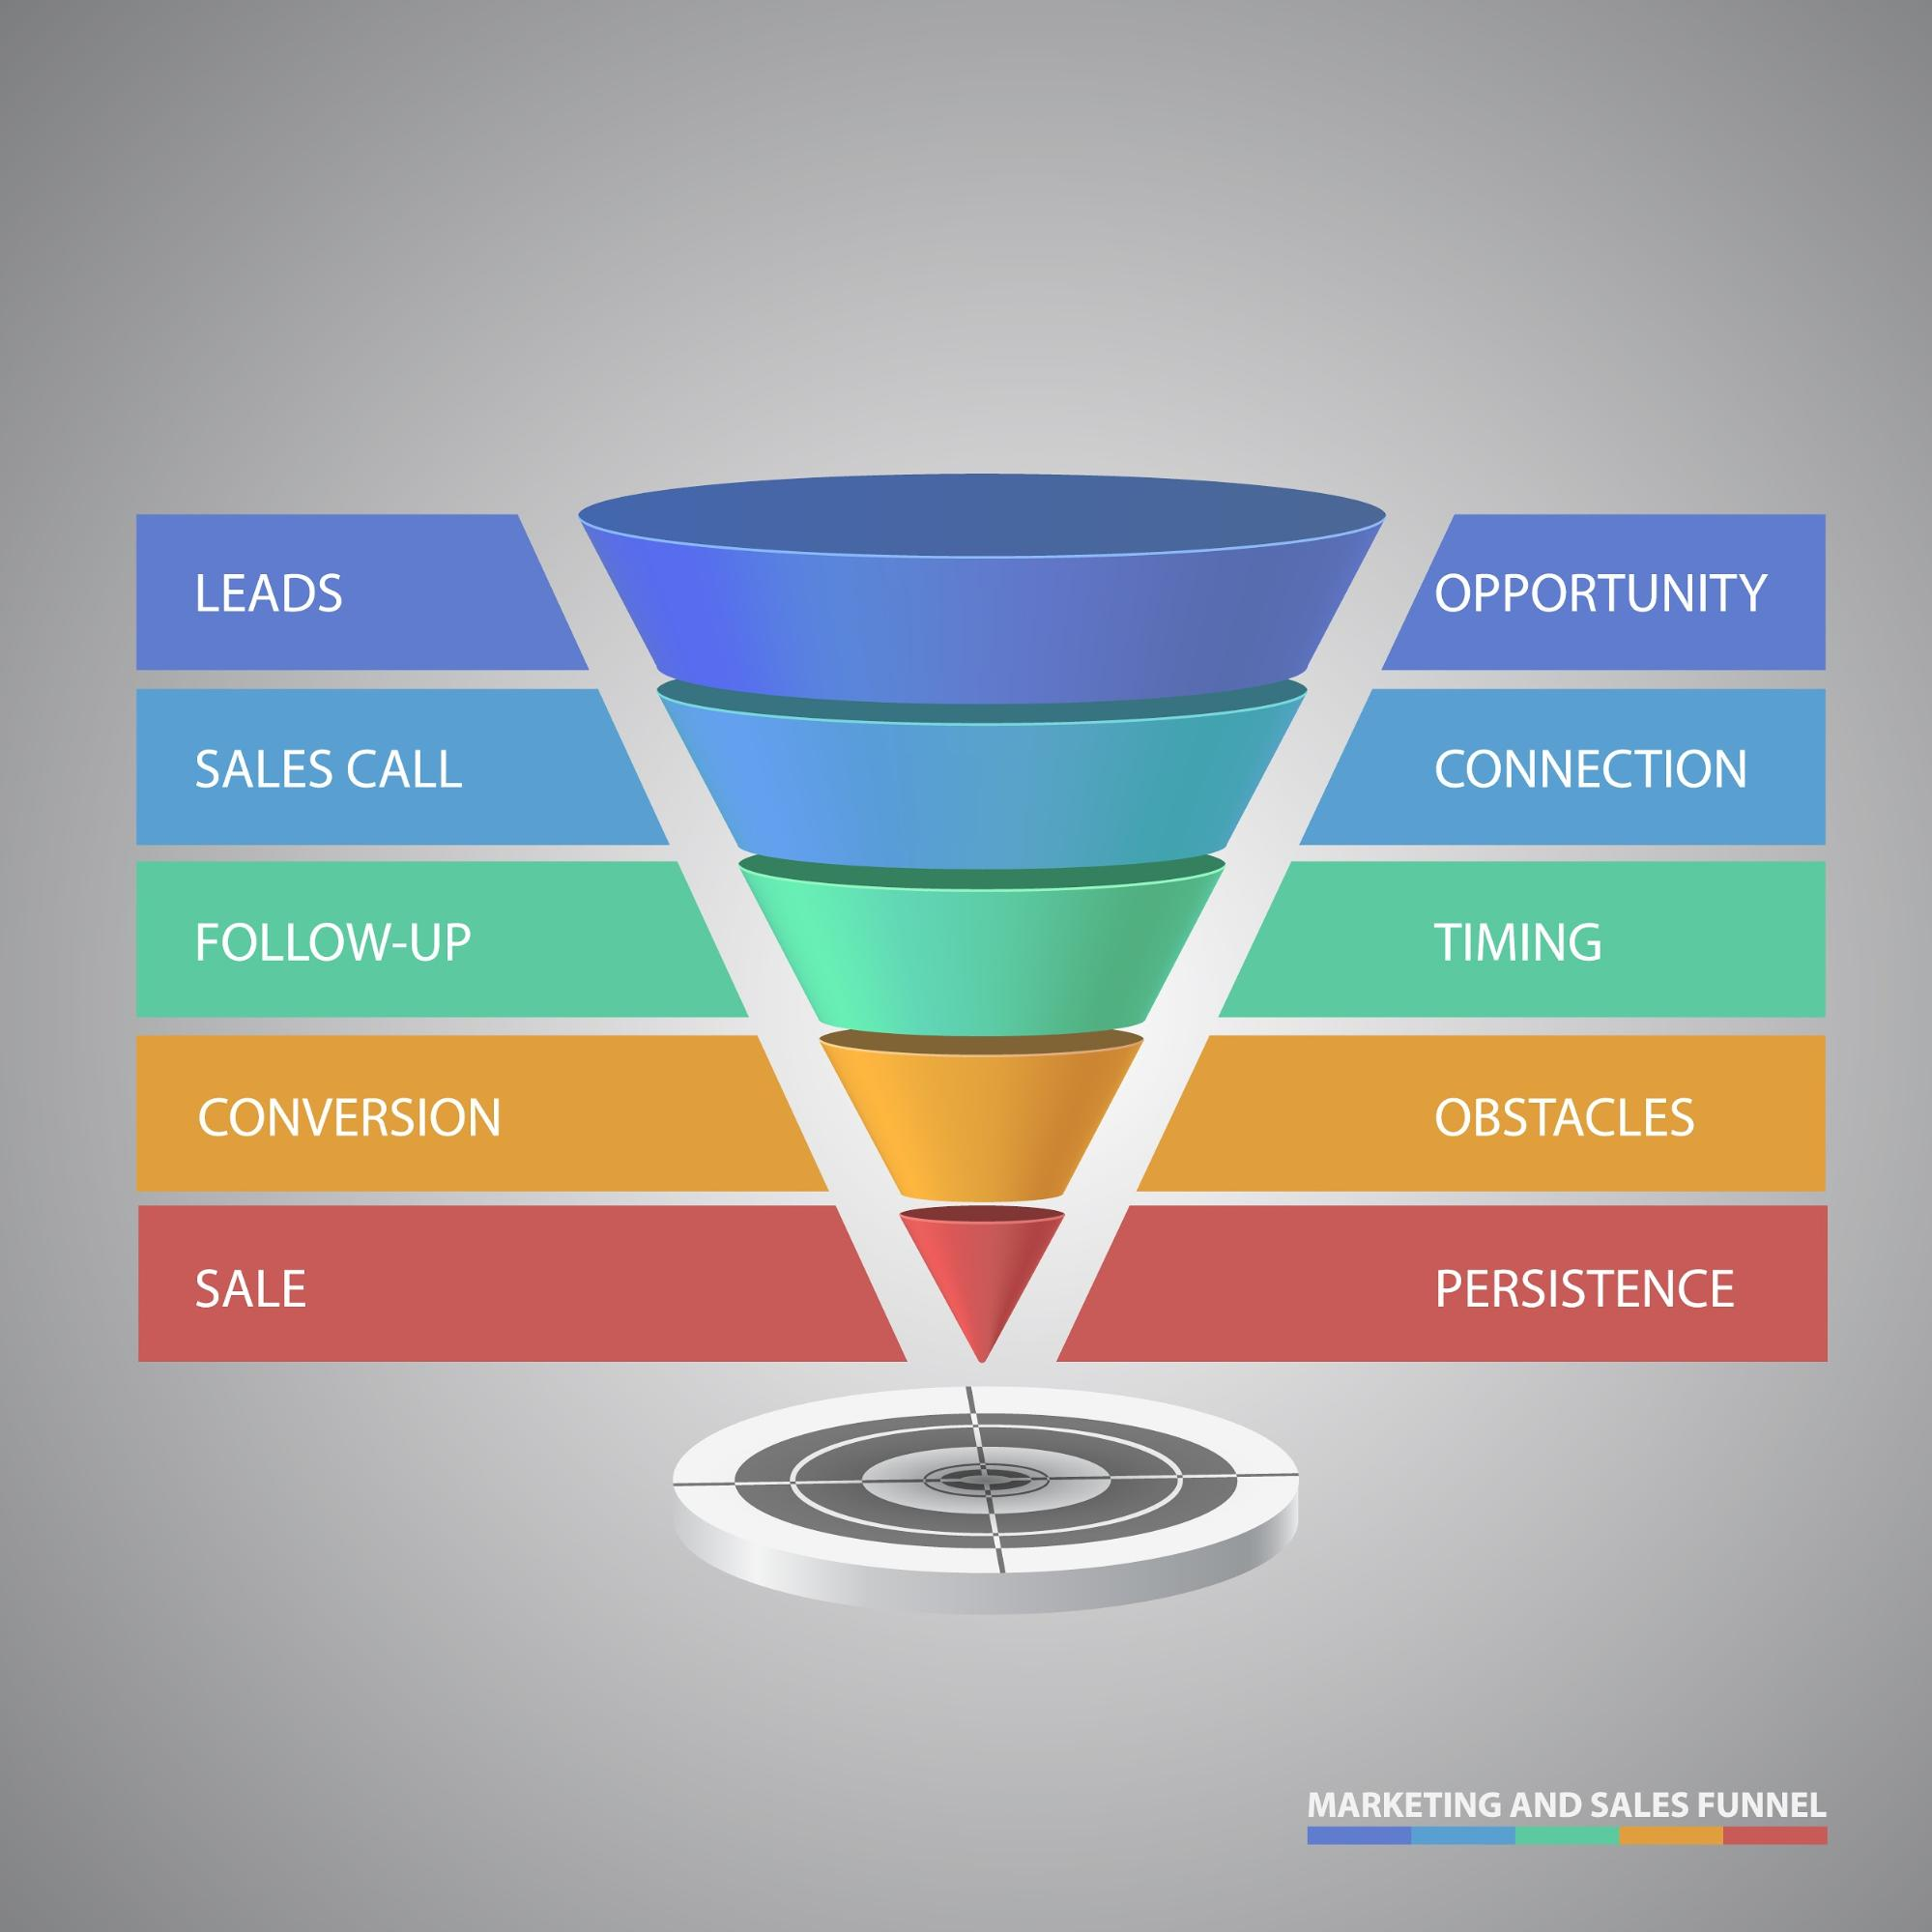 "ecommerce-conversion-funnel ""width ="" 1999 ""height ="" 1999 ""srcset ="" https://blogging-techies.com/wp-content/uploads/2020/05/1589232129_481_Secretos-del-embudo-de-conversion-de-comercio-electronico-formas-efectivas.jpg 1999w, https://s3.amazonaws.com/ceblog/wp-content/uploads/2018/07/19172019/ecommerce-conversion-funnel-150x150.jpg 150w, https://s3.amazonaws.com/ceblog/wp -content / uploads / 2018/07/19172019 / ecommerce-conversion-funnel-300x300.jpg 300w, https://s3.amazonaws.com/ceblog/wp-content/uploads/2018/07/19172019/ecommerce-conversion- funnel-768x768.jpg 768w, https://s3.amazonaws.com/ceblog/wp-content/uploads/2018/07/19172019/ecommerce-conversion-funnel-1024x1024.jpg 1024w ""tamaños ="" (ancho máximo: 1999px) 100vw, 1999px ""data-jpibfi-post-excerpt ="" ""data-jpibfi-post-url ="" https://www.crazyegg.com/blog/ecommerce-conversion-funnel/ ""data-jpibfi-post- title = ""Secretos del embudo de conversión de comercio electrónico: formas efectivas de aumentar las conversiones e impulsar las ventas"" data-jpibfi-src = ""https://s3.amazonaws.com/ceblog/wp-content/uploads/2018/07/ 19172019 / ecommerce-c onversion-funnel.jpg ""></p> <p>Cada empresa tiene un embudo de conversión de comercio electrónico diferente según los detalles de cómo los usuarios navegan por sus negocios. Las etapas son las mismas, como describiré a continuación, pero los detalles dependen de su producto y audiencia.</p><div class='code-block code-block-4' style='margin: 8px auto; text-align: center; display: block; clear: both;'> <div data-ad="